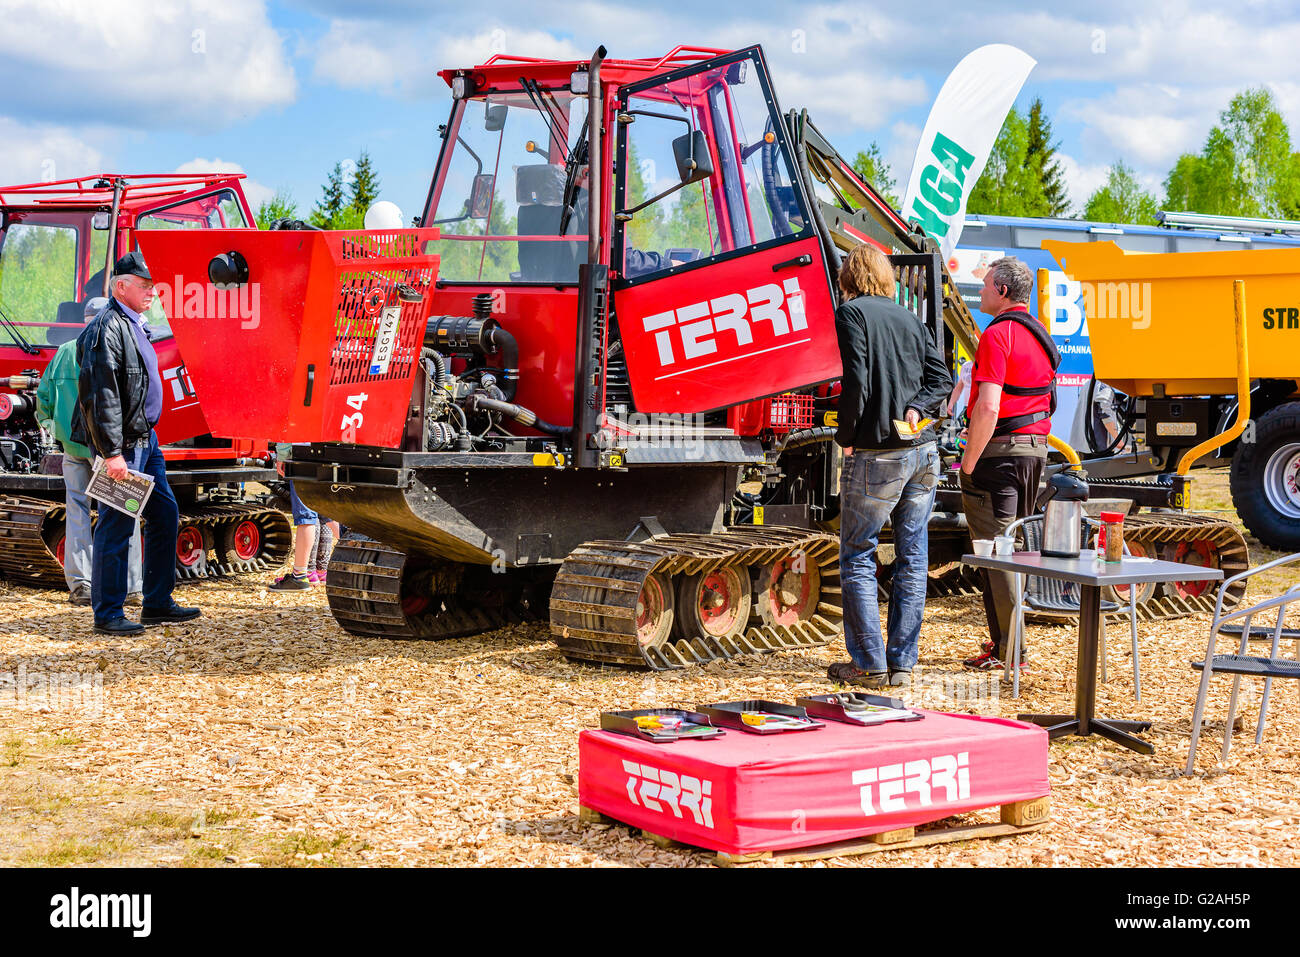 Emmaboda, Sweden - May 14, 2016: Forest and tractor (Skog och traktor) fair. People looking closer at the Terri Stock Photo